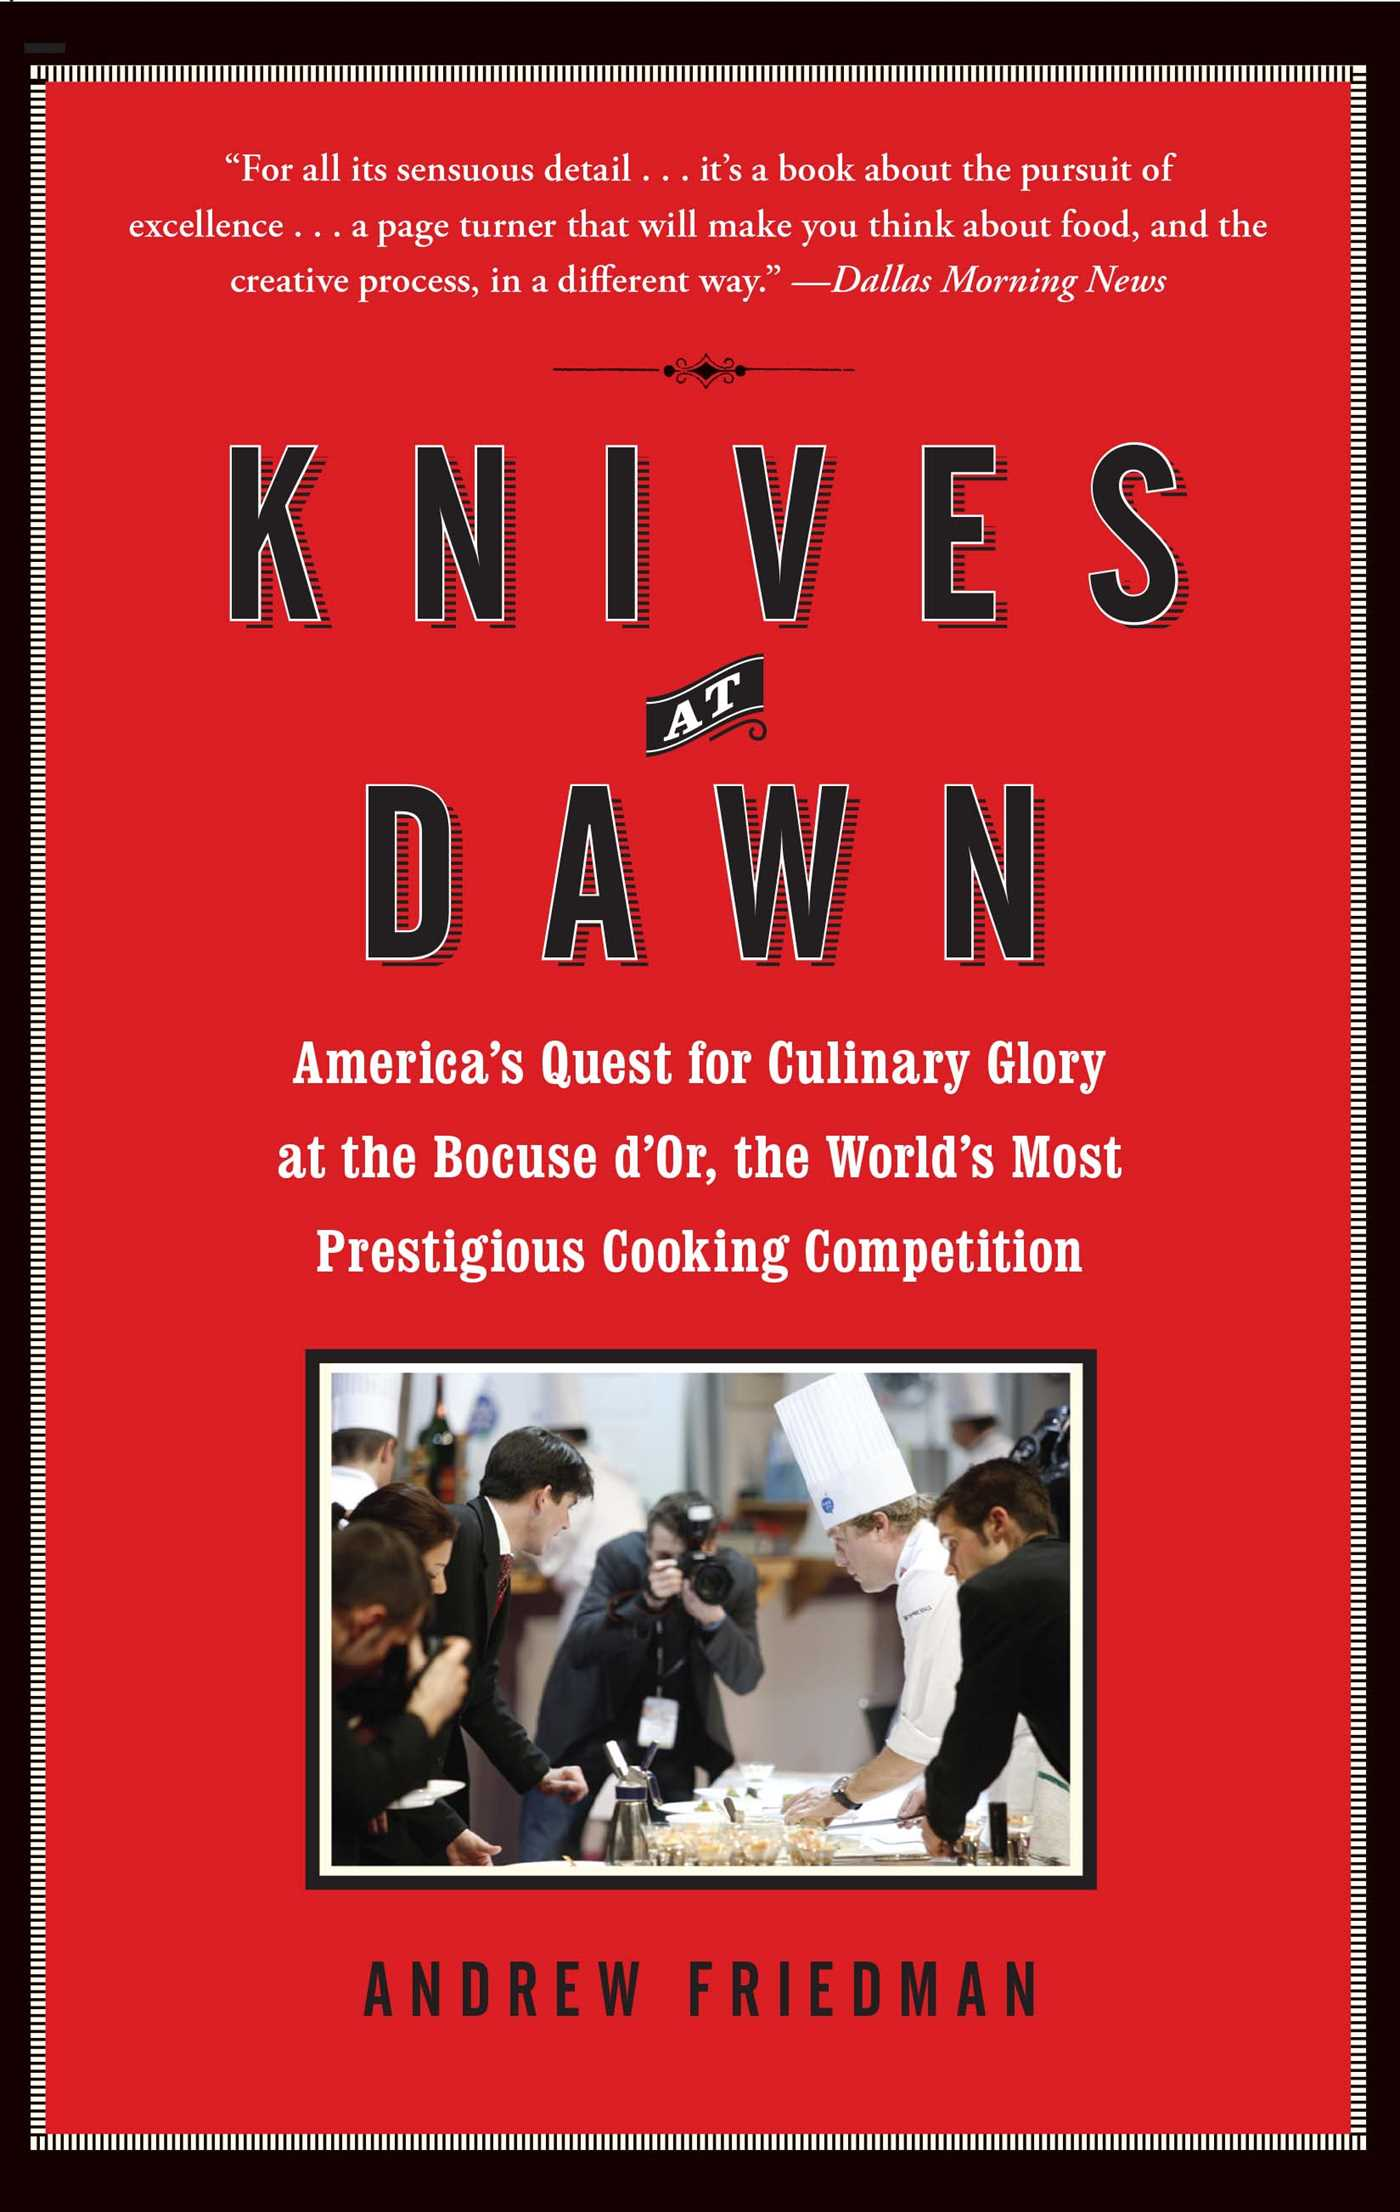 Knives at dawn 9781439153116 hr